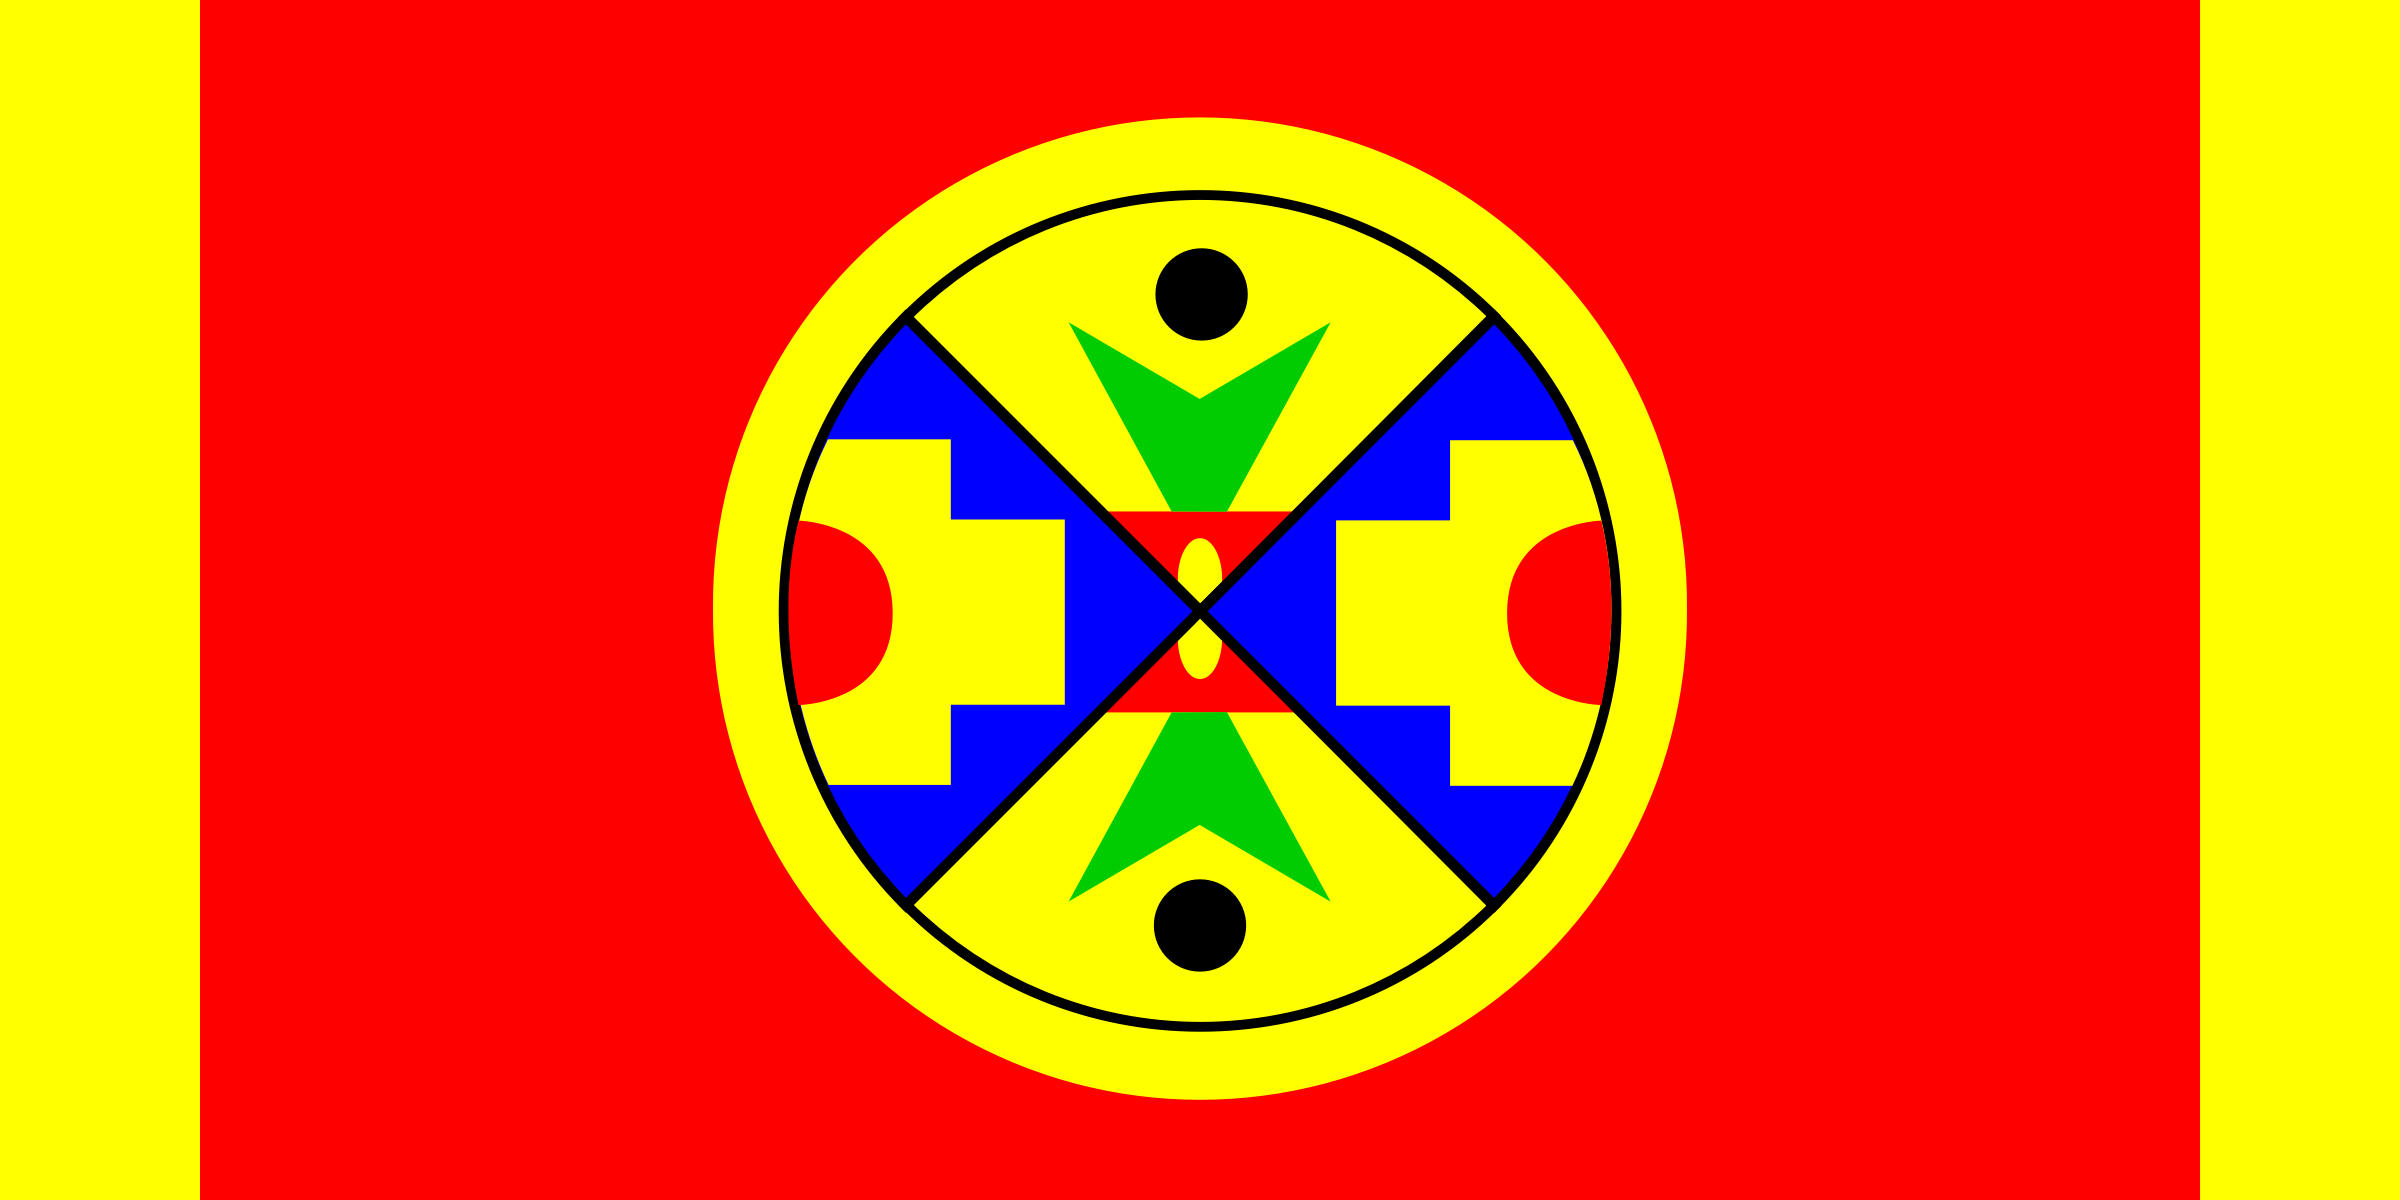 Eel Ground flag by Andy_Gardner